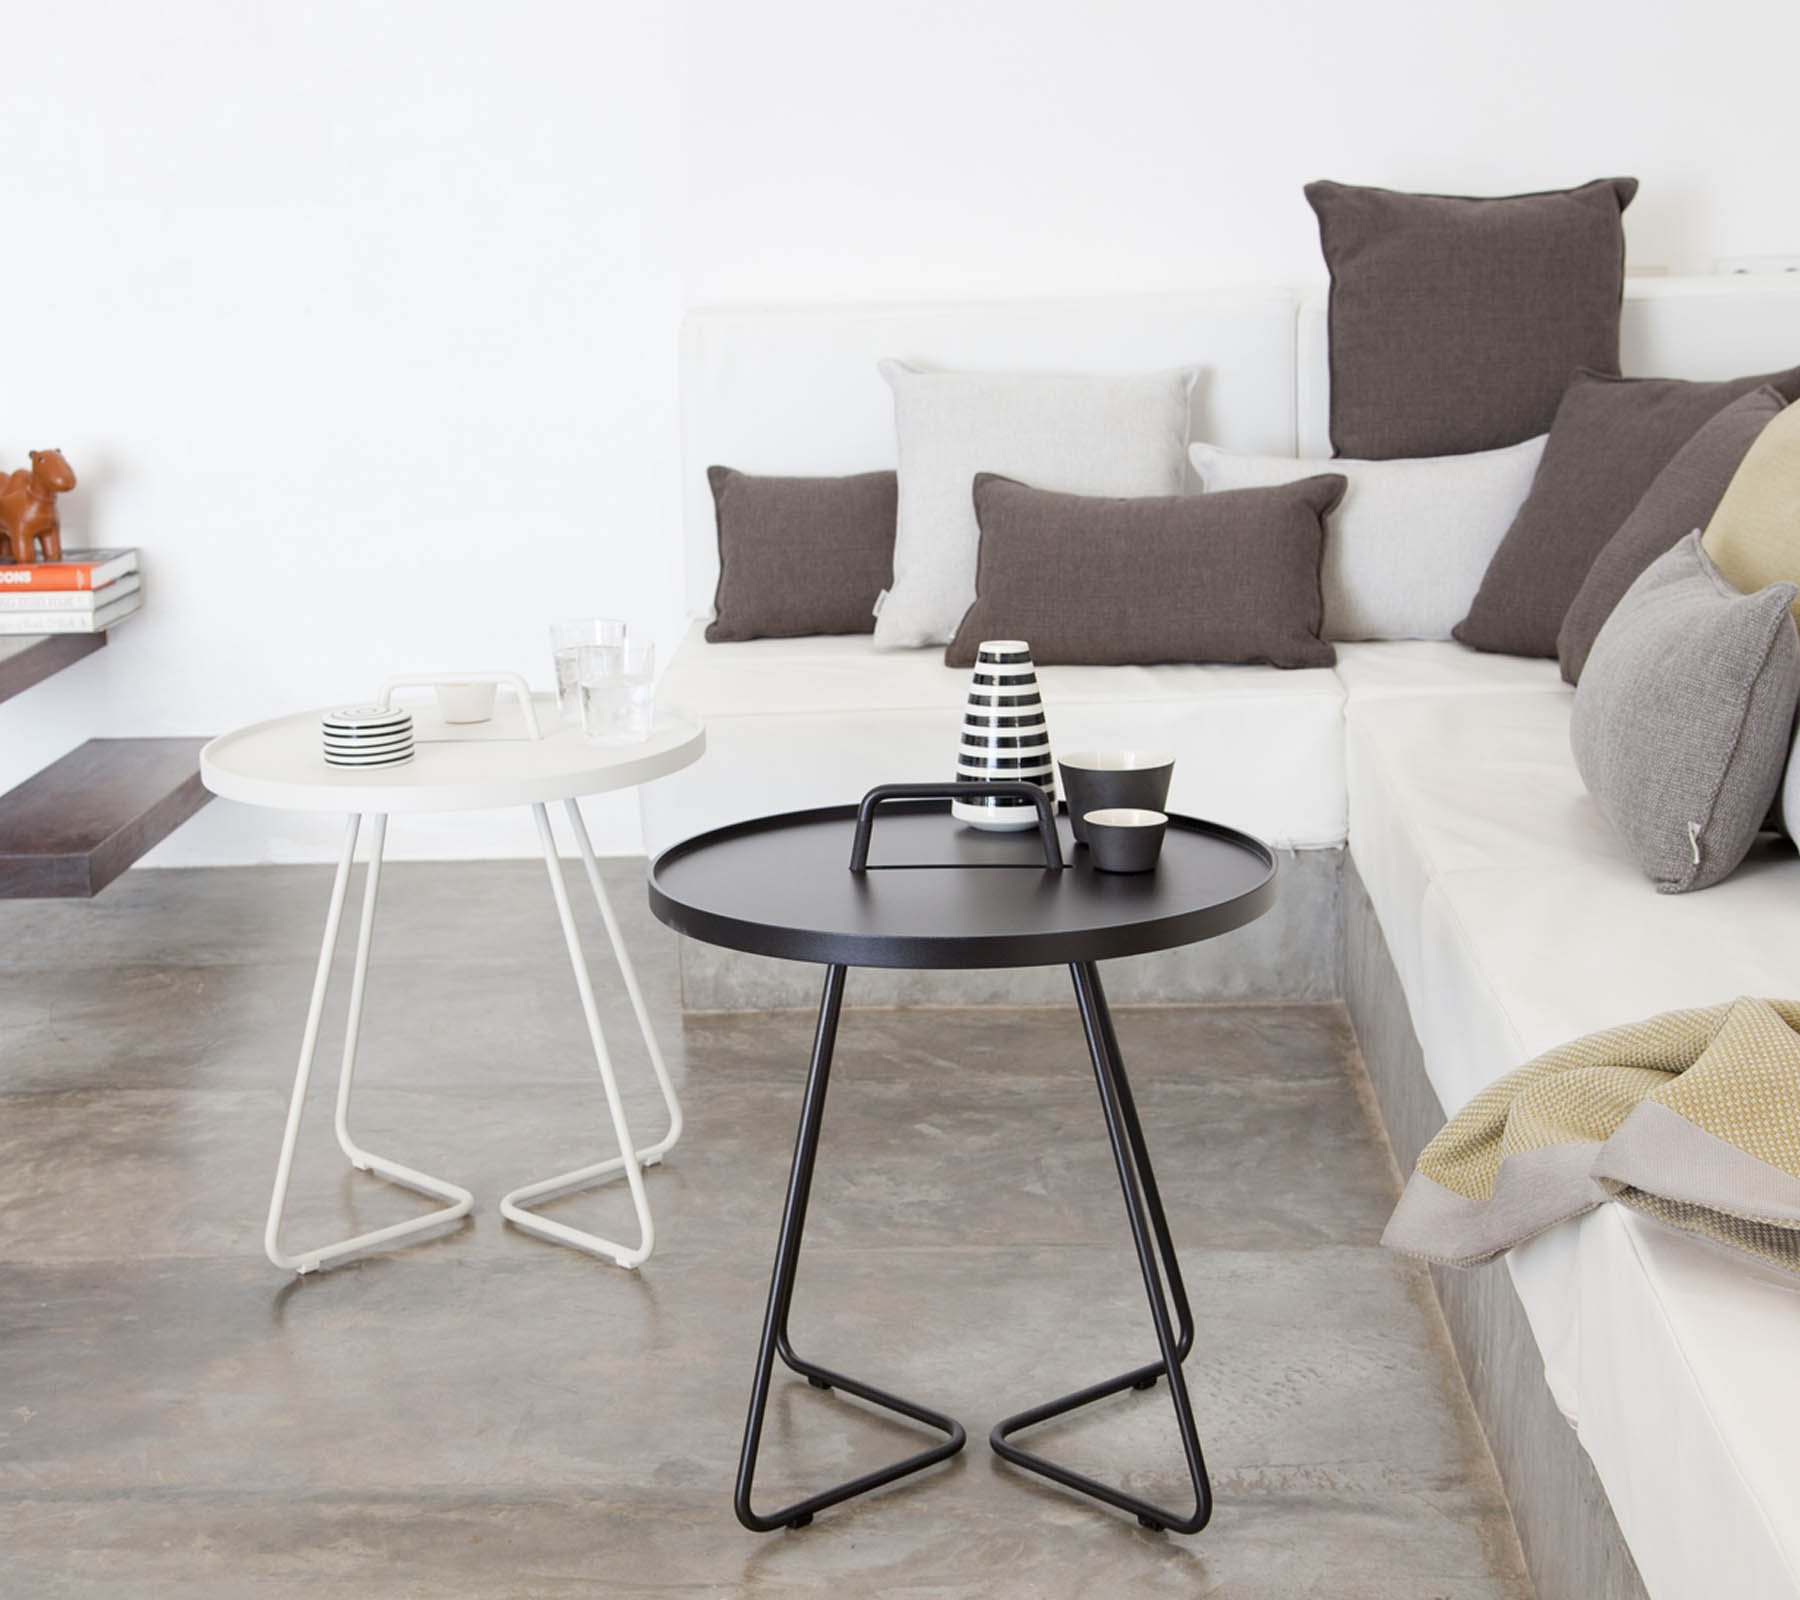 On the Move Side Table end from Cane-line, designed by Strand+Hvass